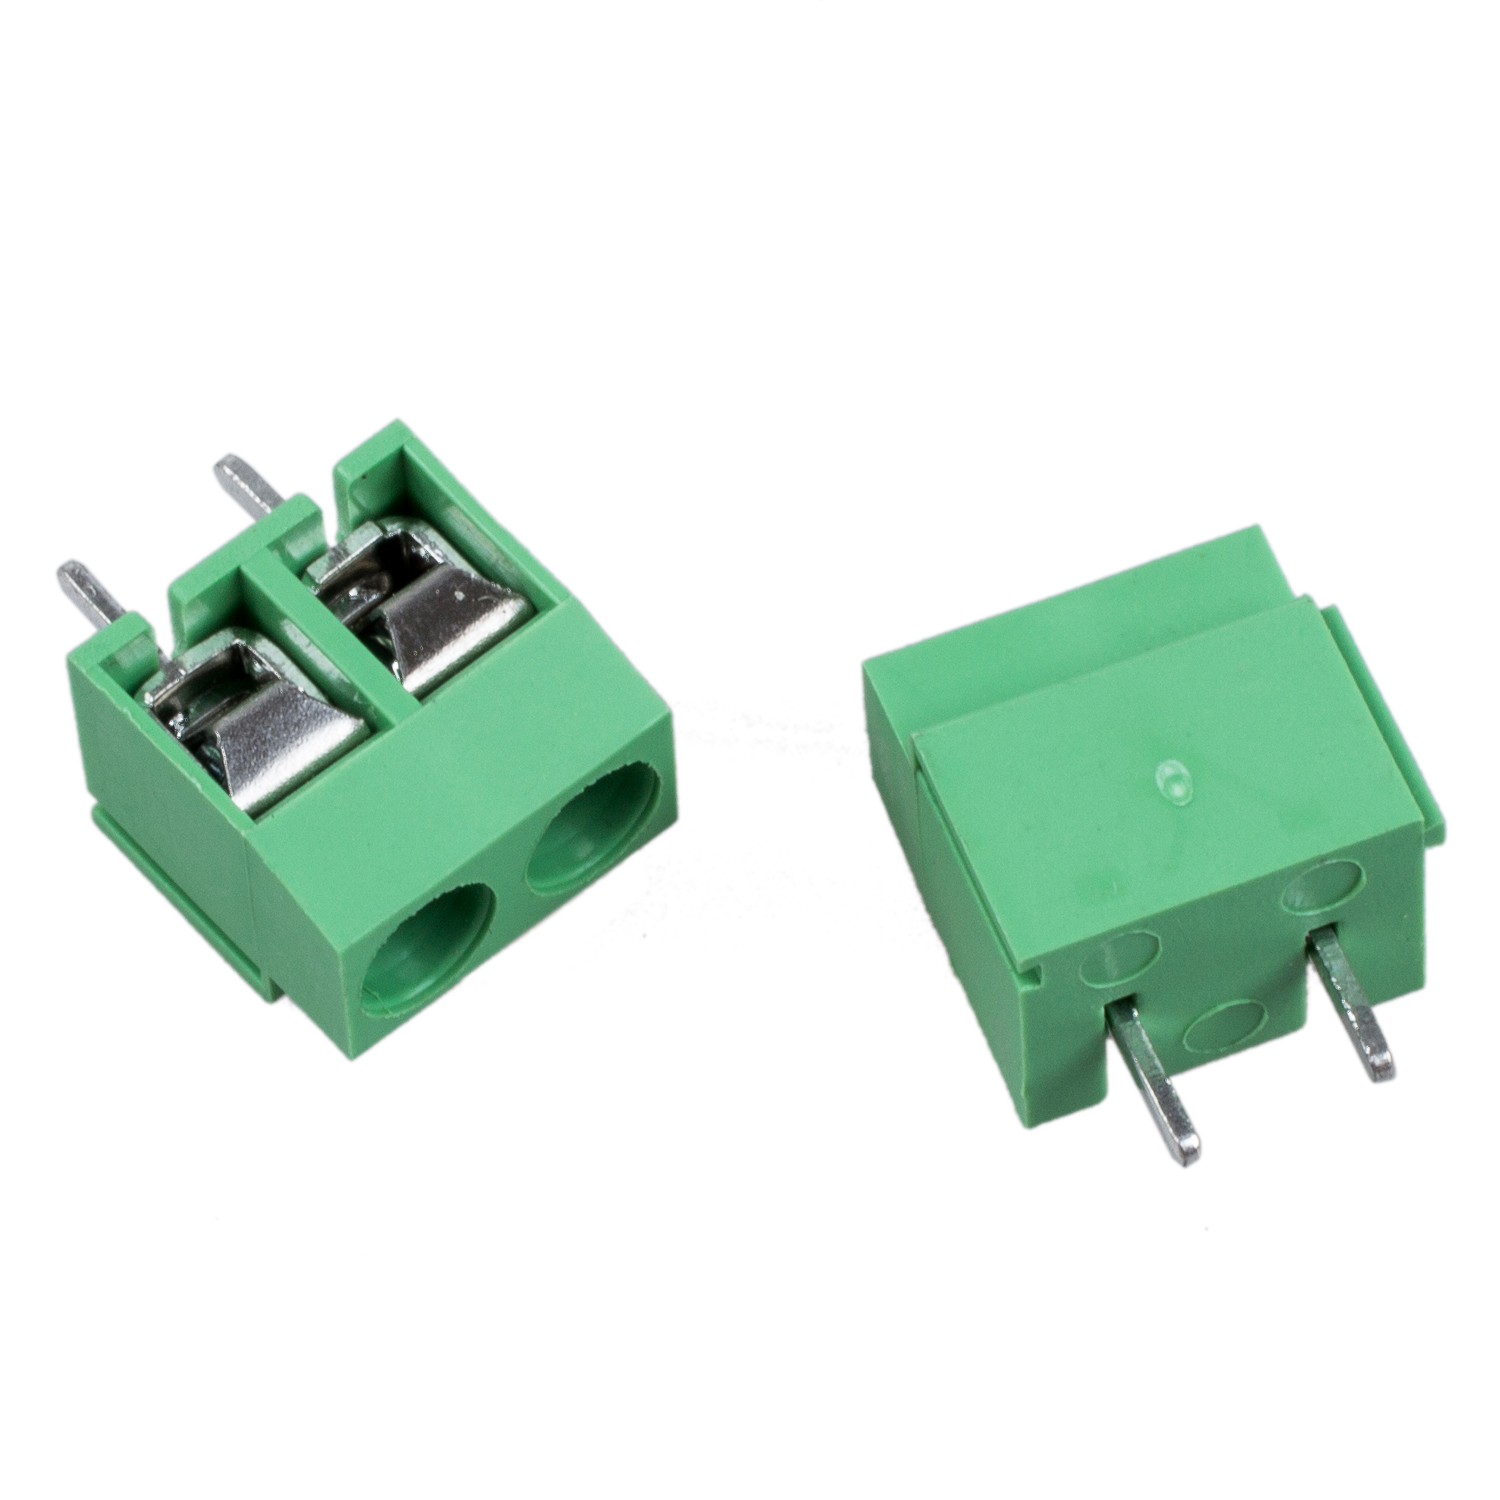 High Quality 20pcs 2 Pole 5mm Pitch PCB Mount Screw TermInal Block Connector 8A 250V